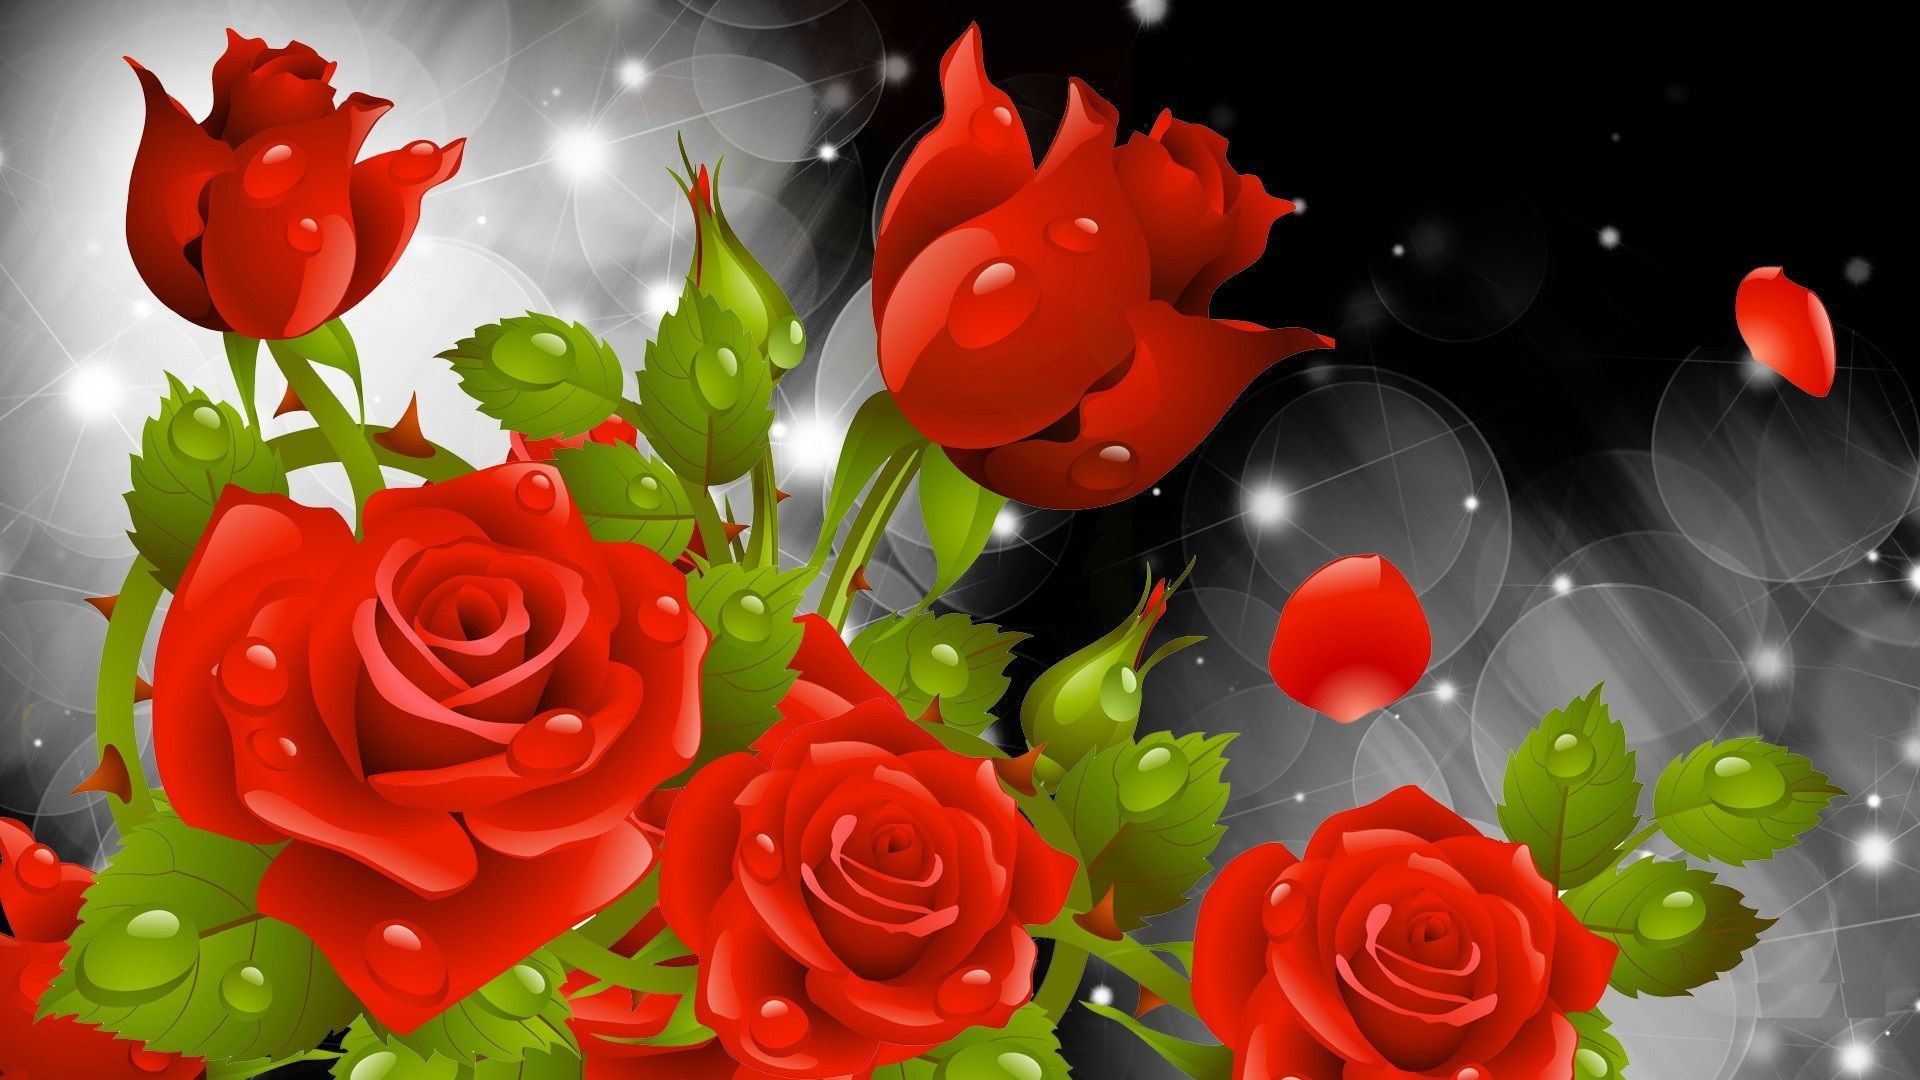 Free Download Rose Flower Wallpaper For Pc